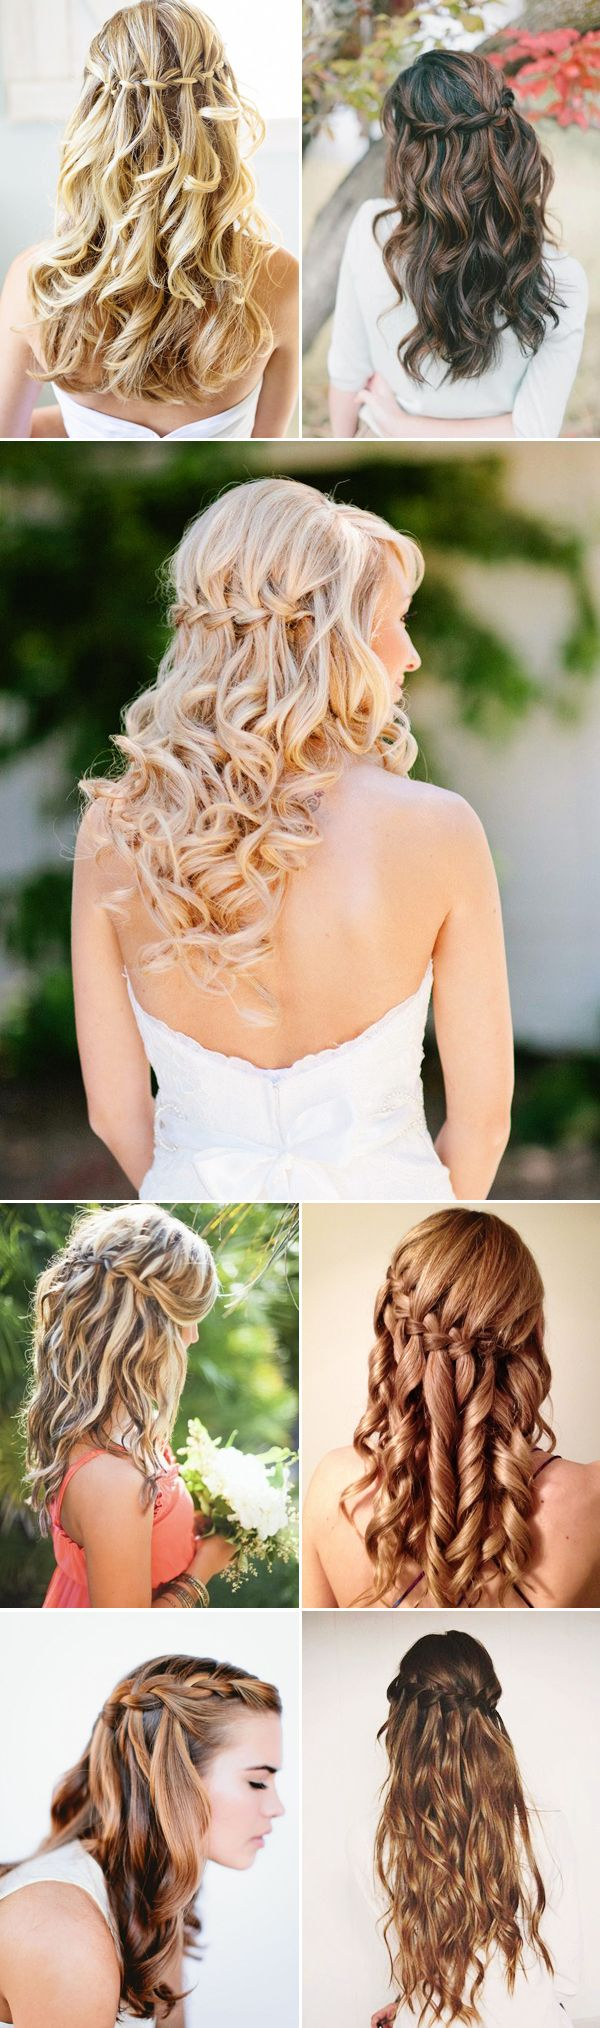 20 Swoonworthy Long Bridal Hairstyles